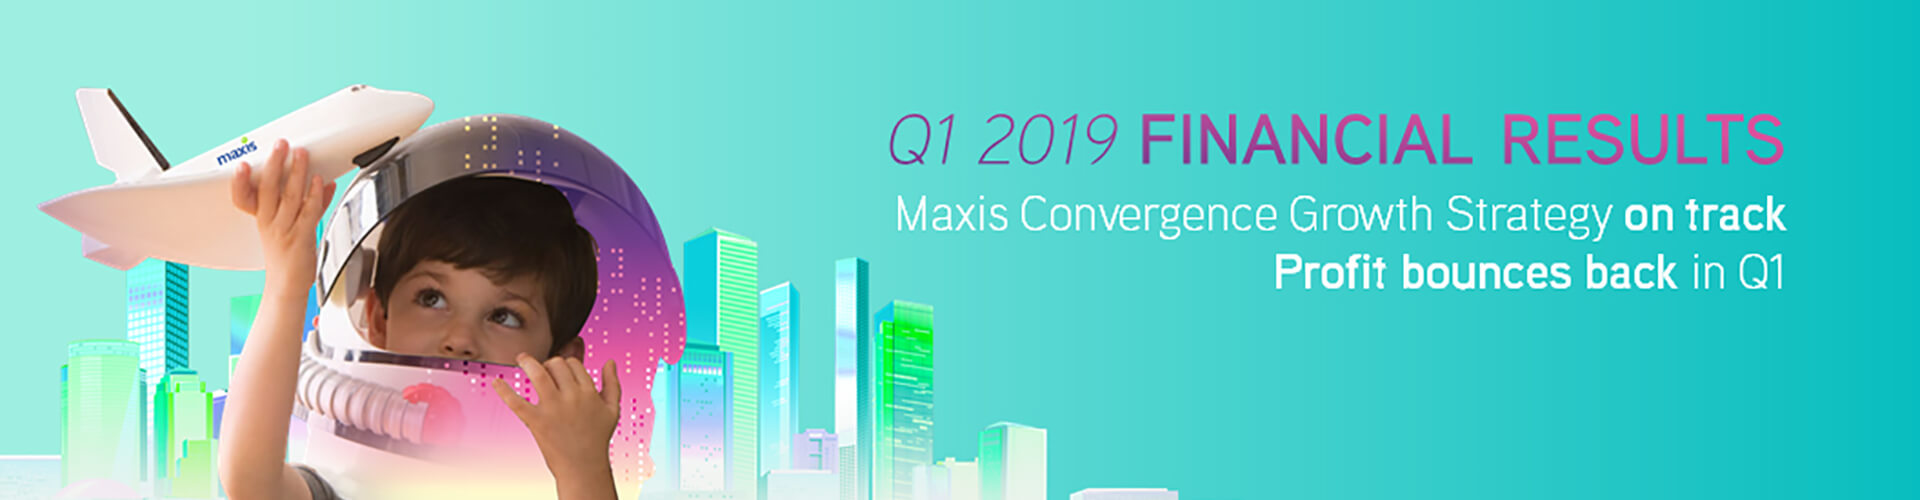 Maxis' Convergence Growth Strategy on track, profit bounces back in Q1